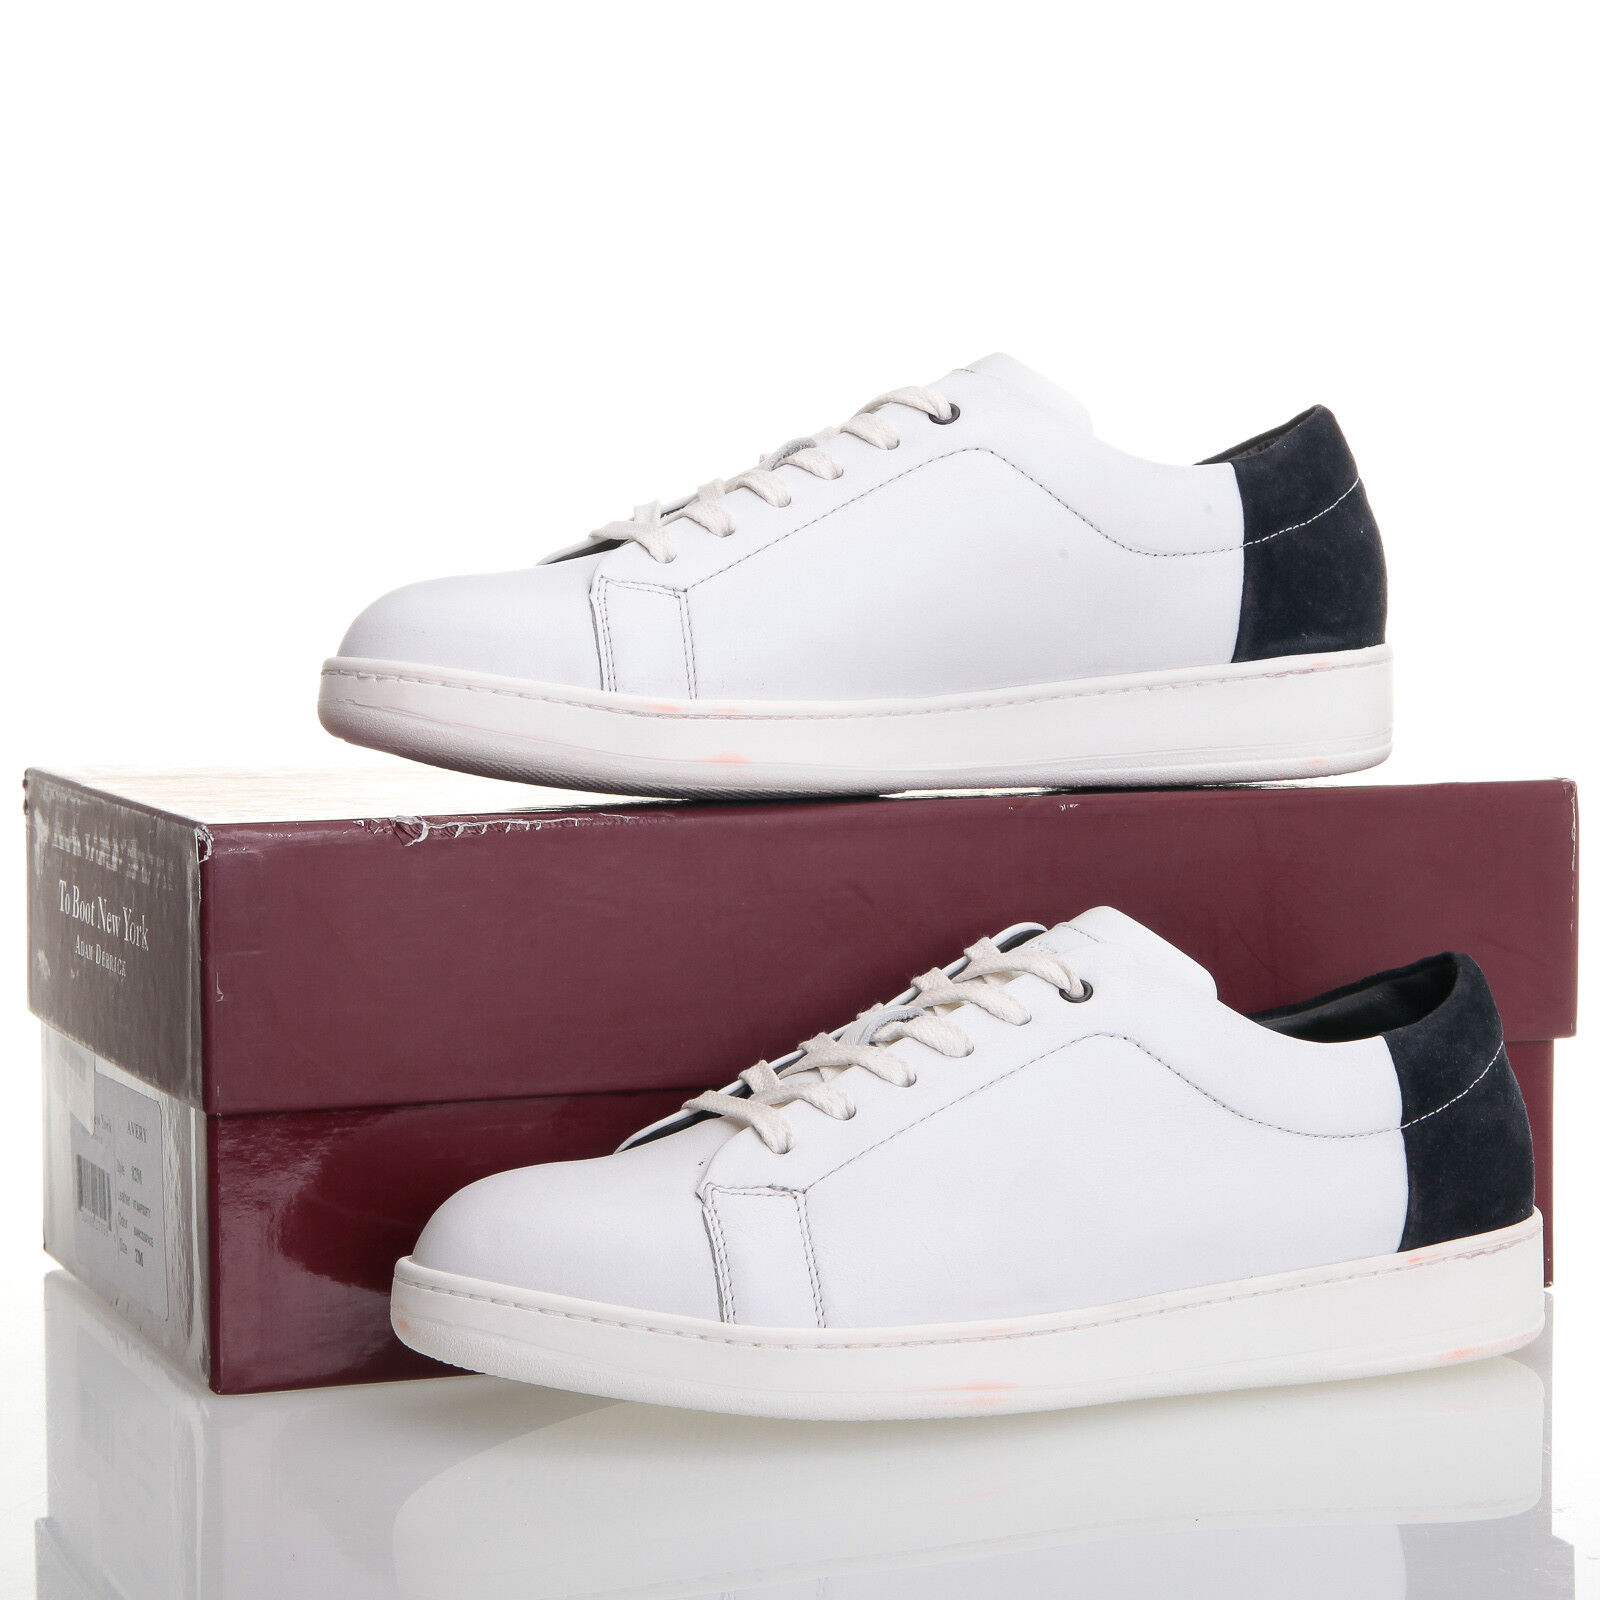 To Boot New York Avery Space White Pelle Low Top  - Uomo Size 7 M